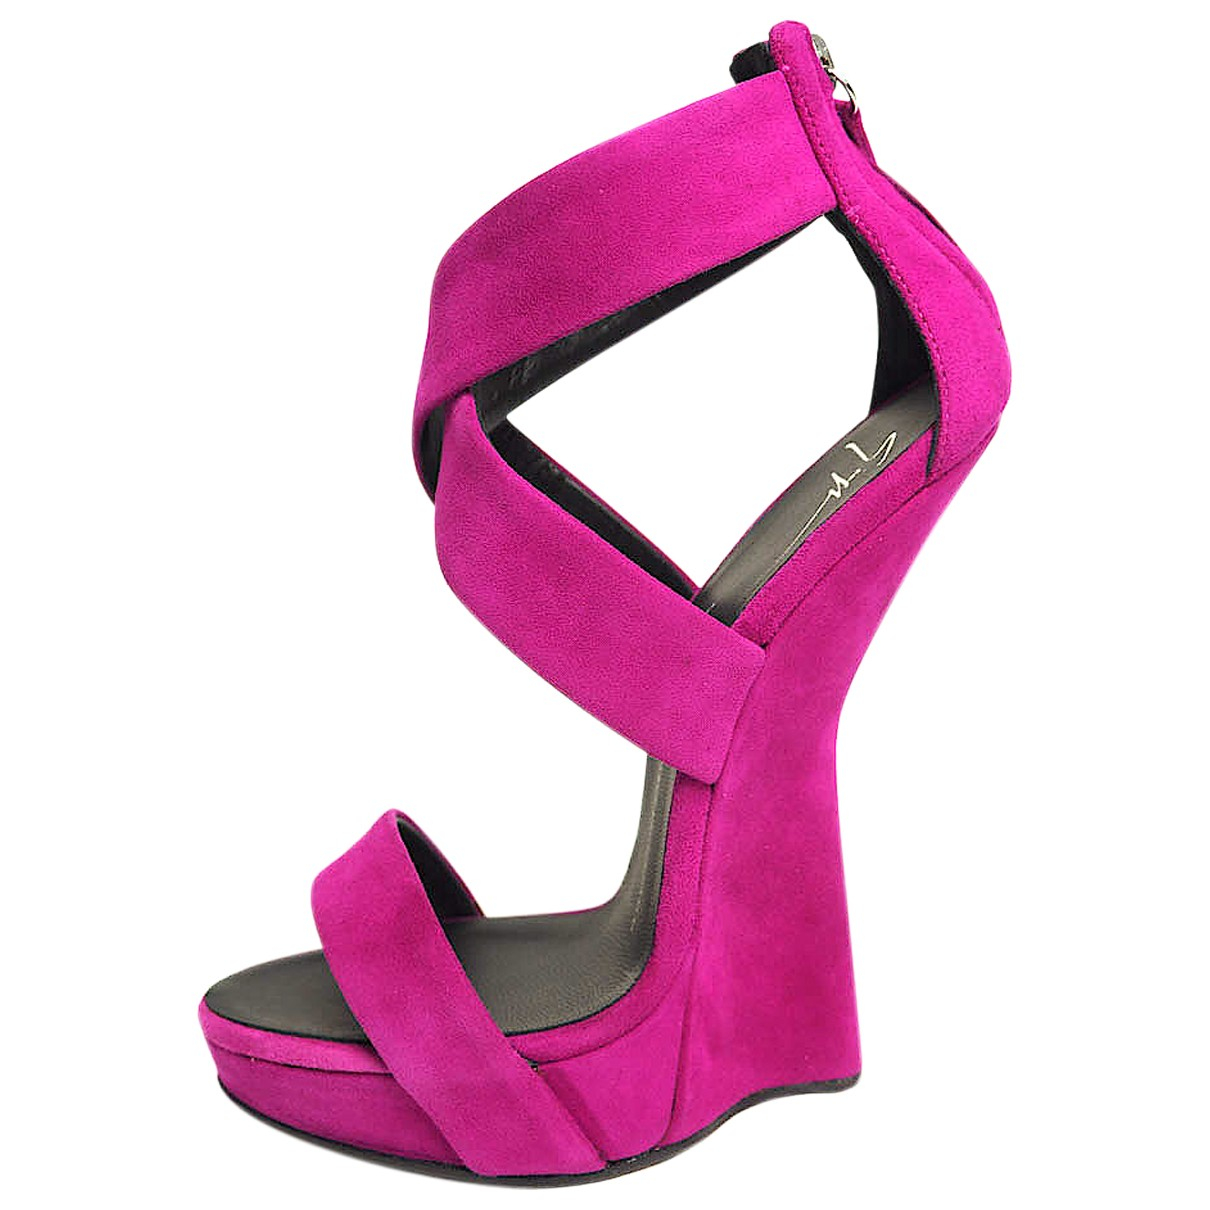 Giuseppe Zanotti N Purple Leather Heels for Women 36 EU